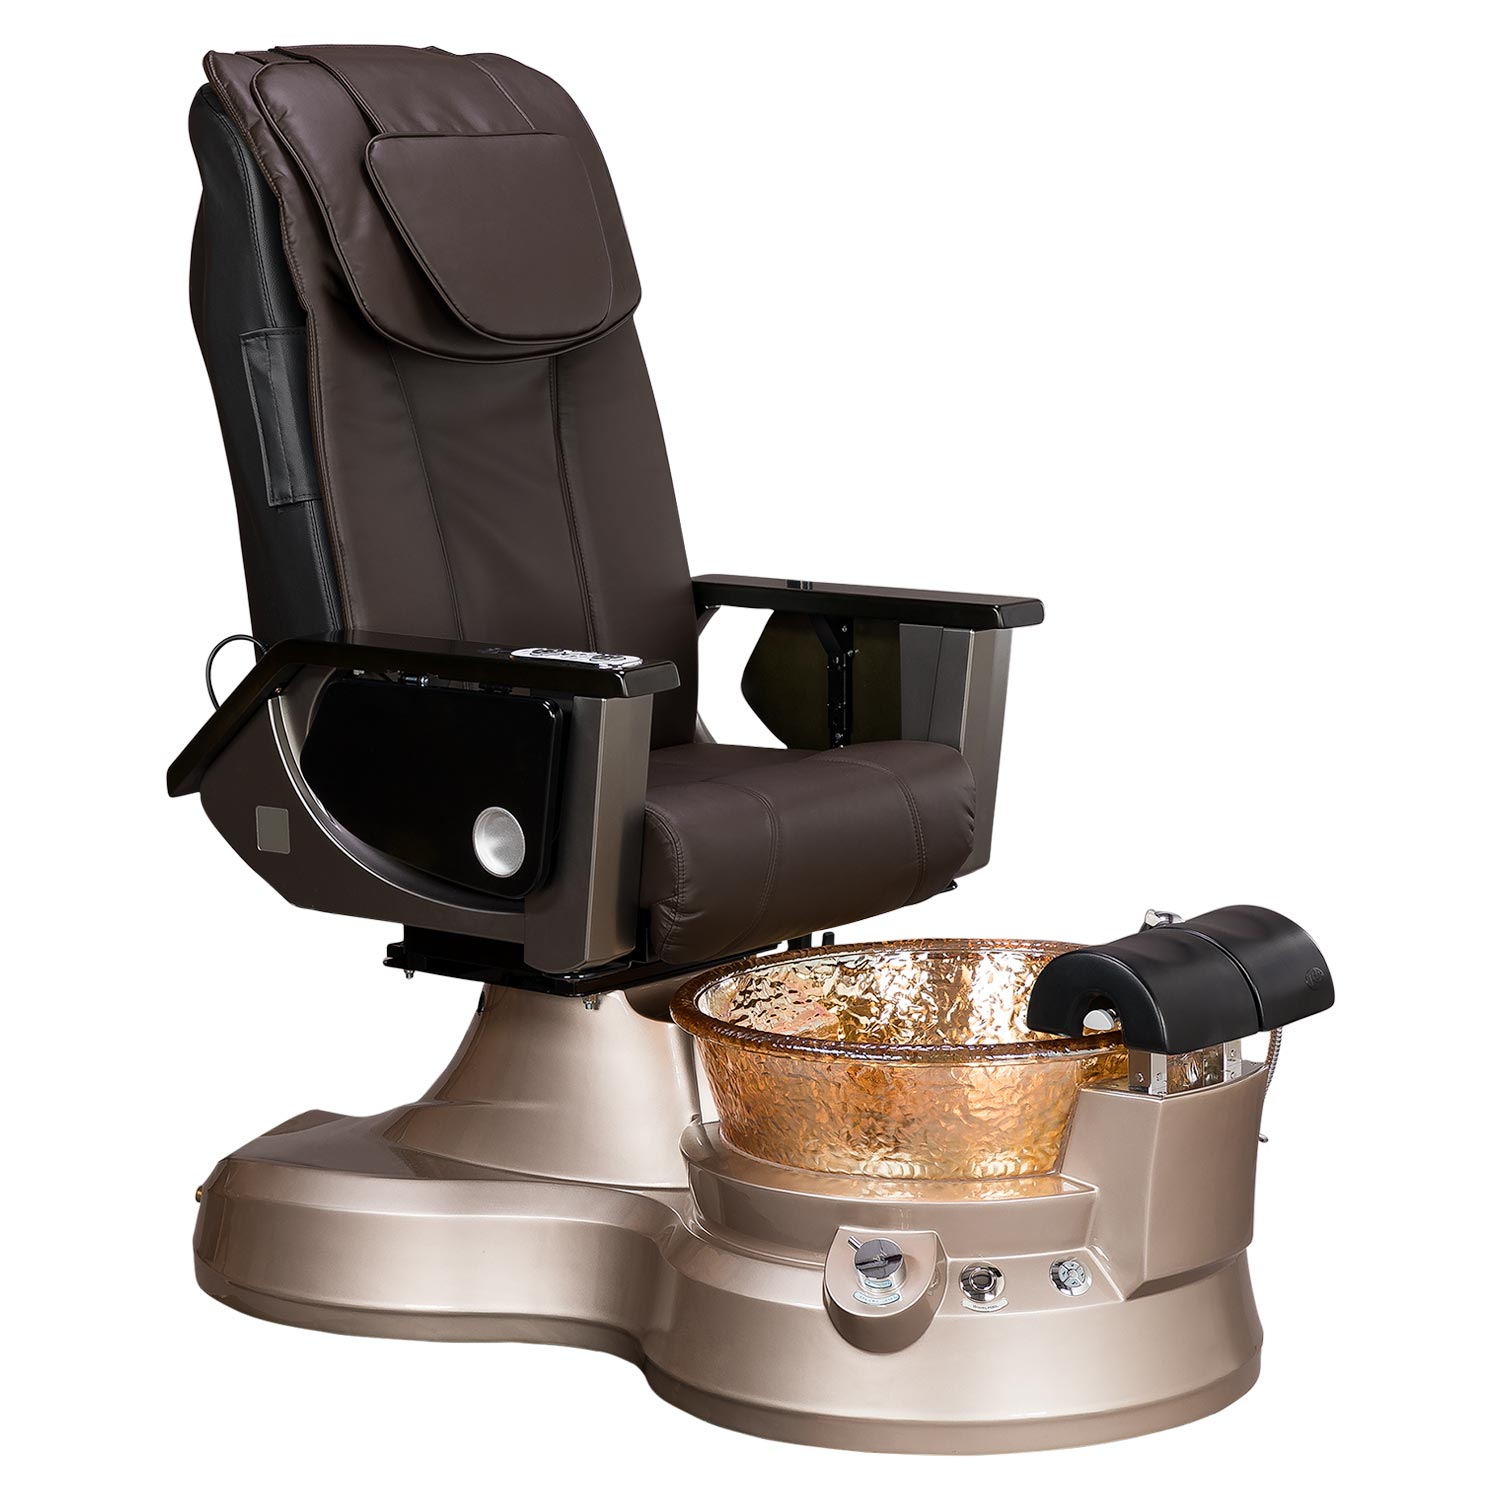 Lenox LX Pipeless Pedicure Spa Chair alternative product image 5